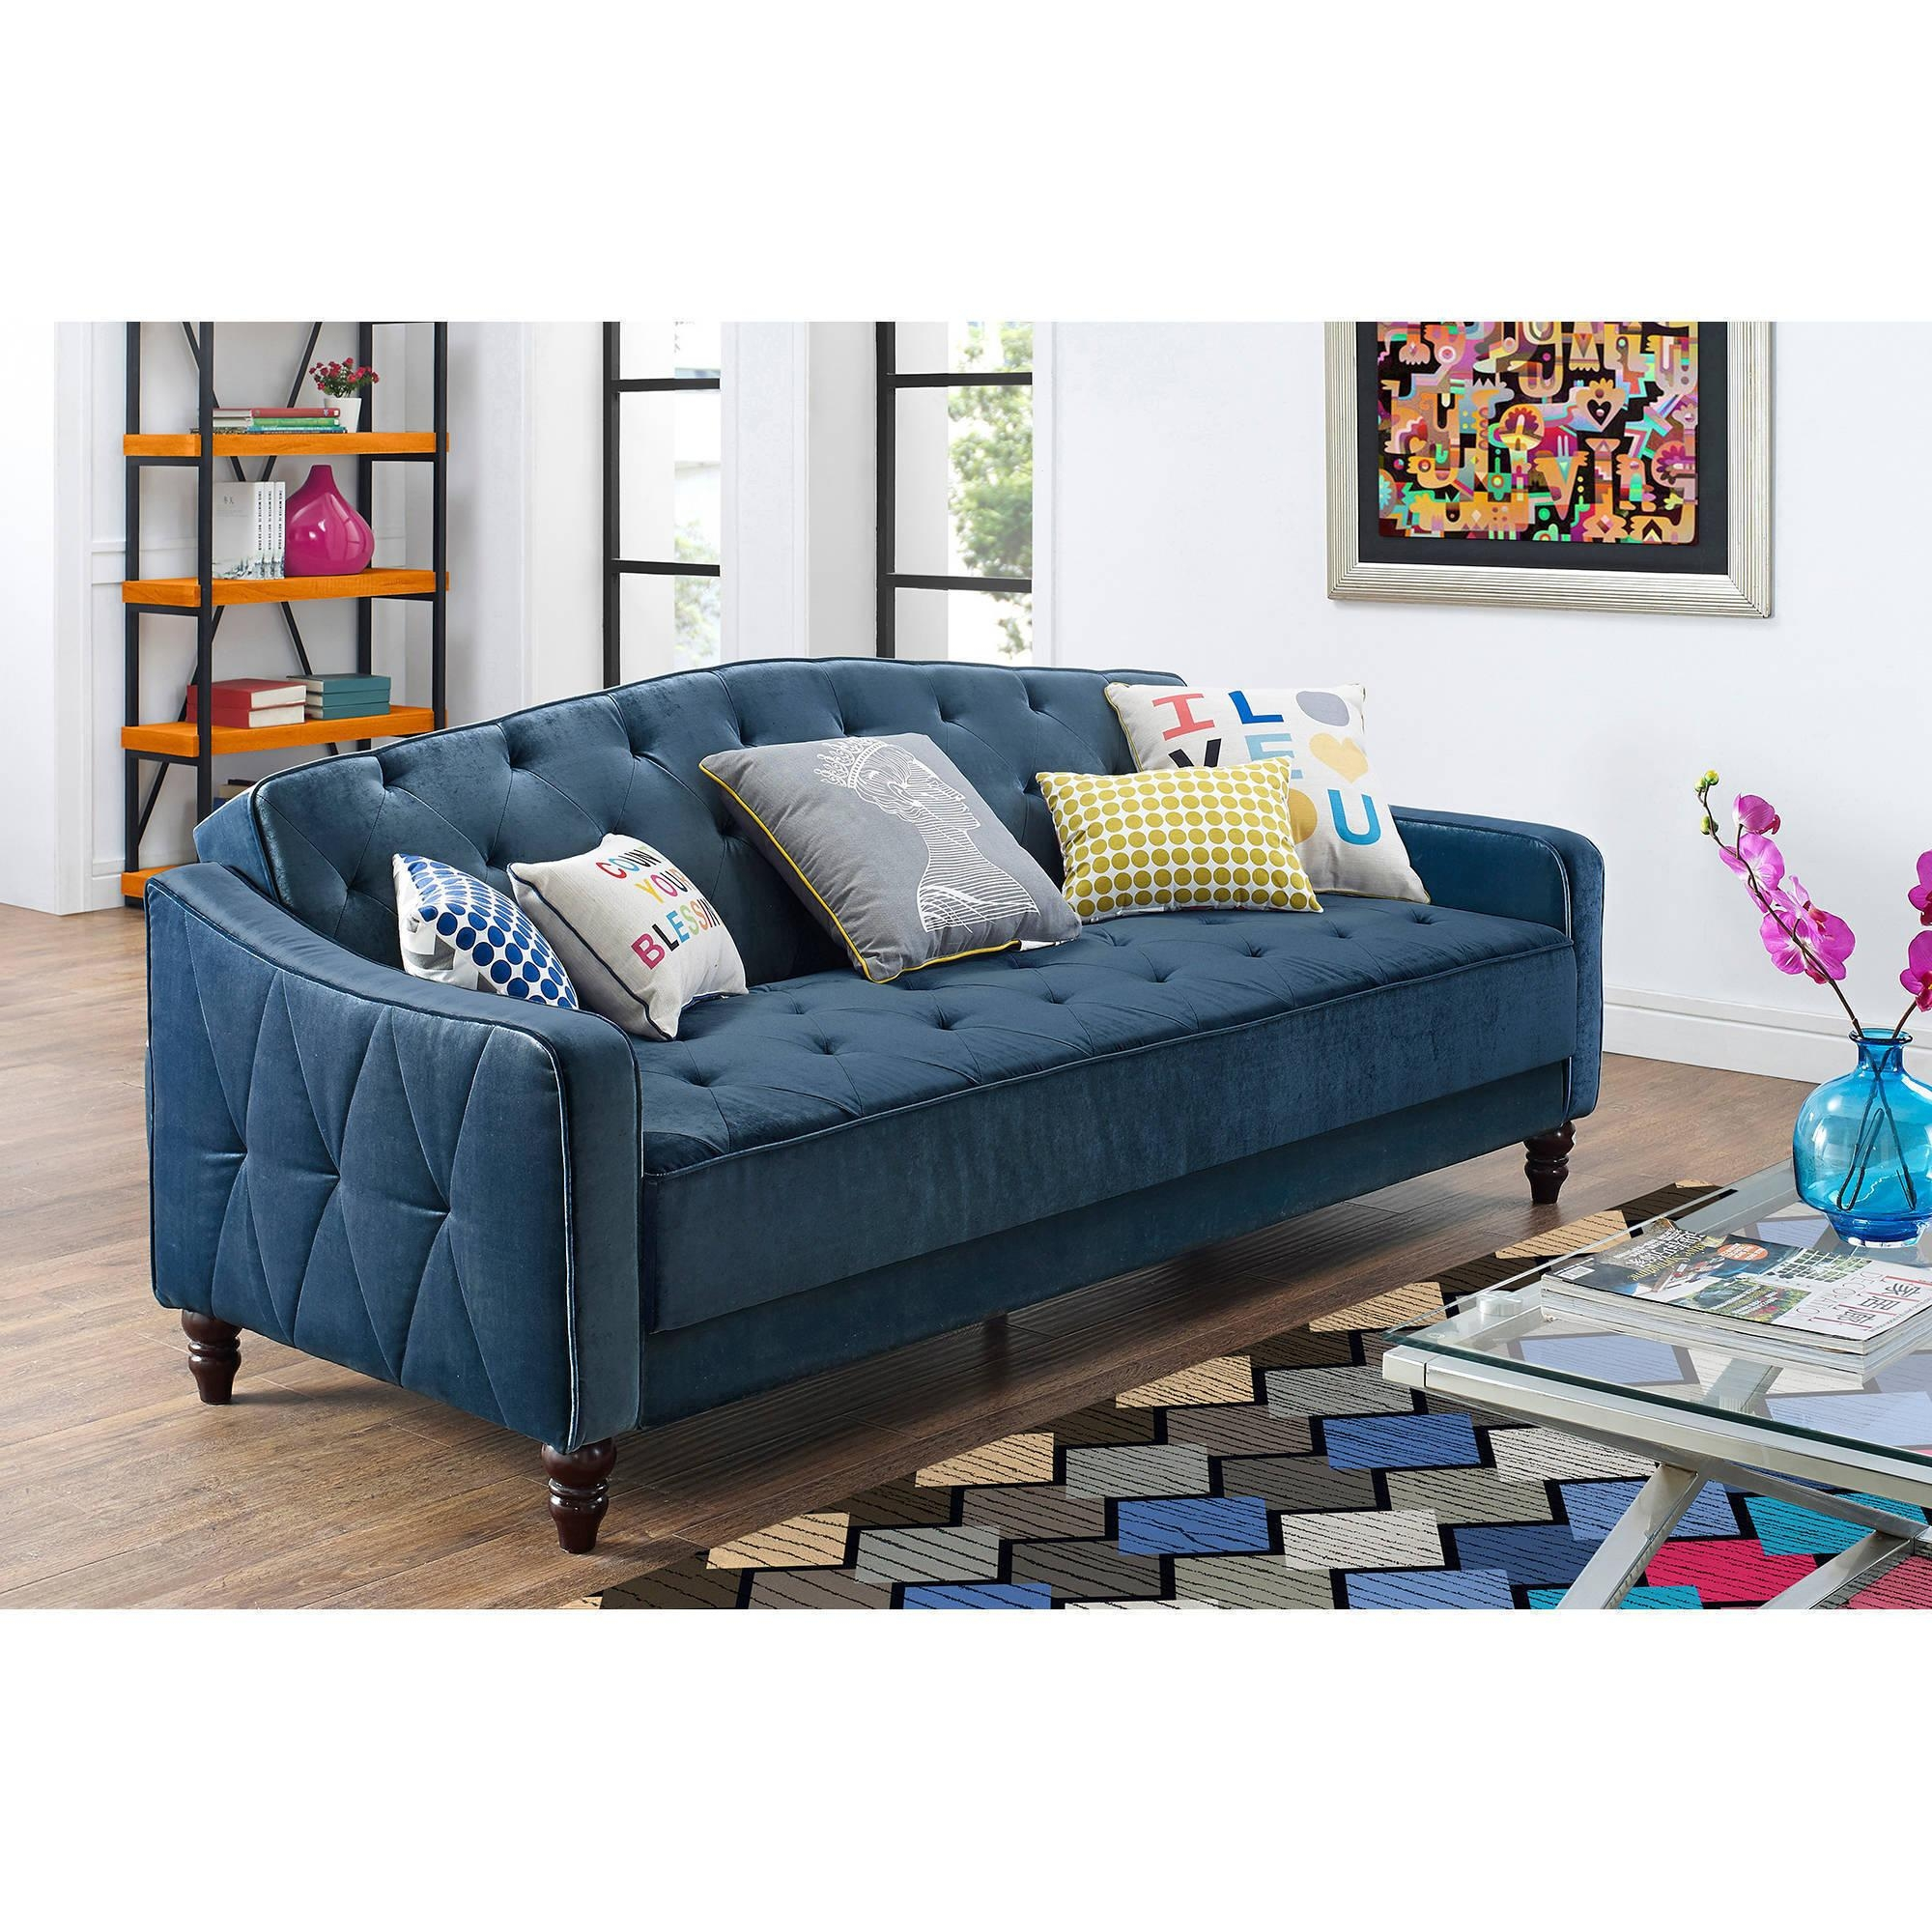 Futons, Futon Beds, Sofa Beds – Walmart Throughout Euro Sofa Beds (Image 14 of 20)